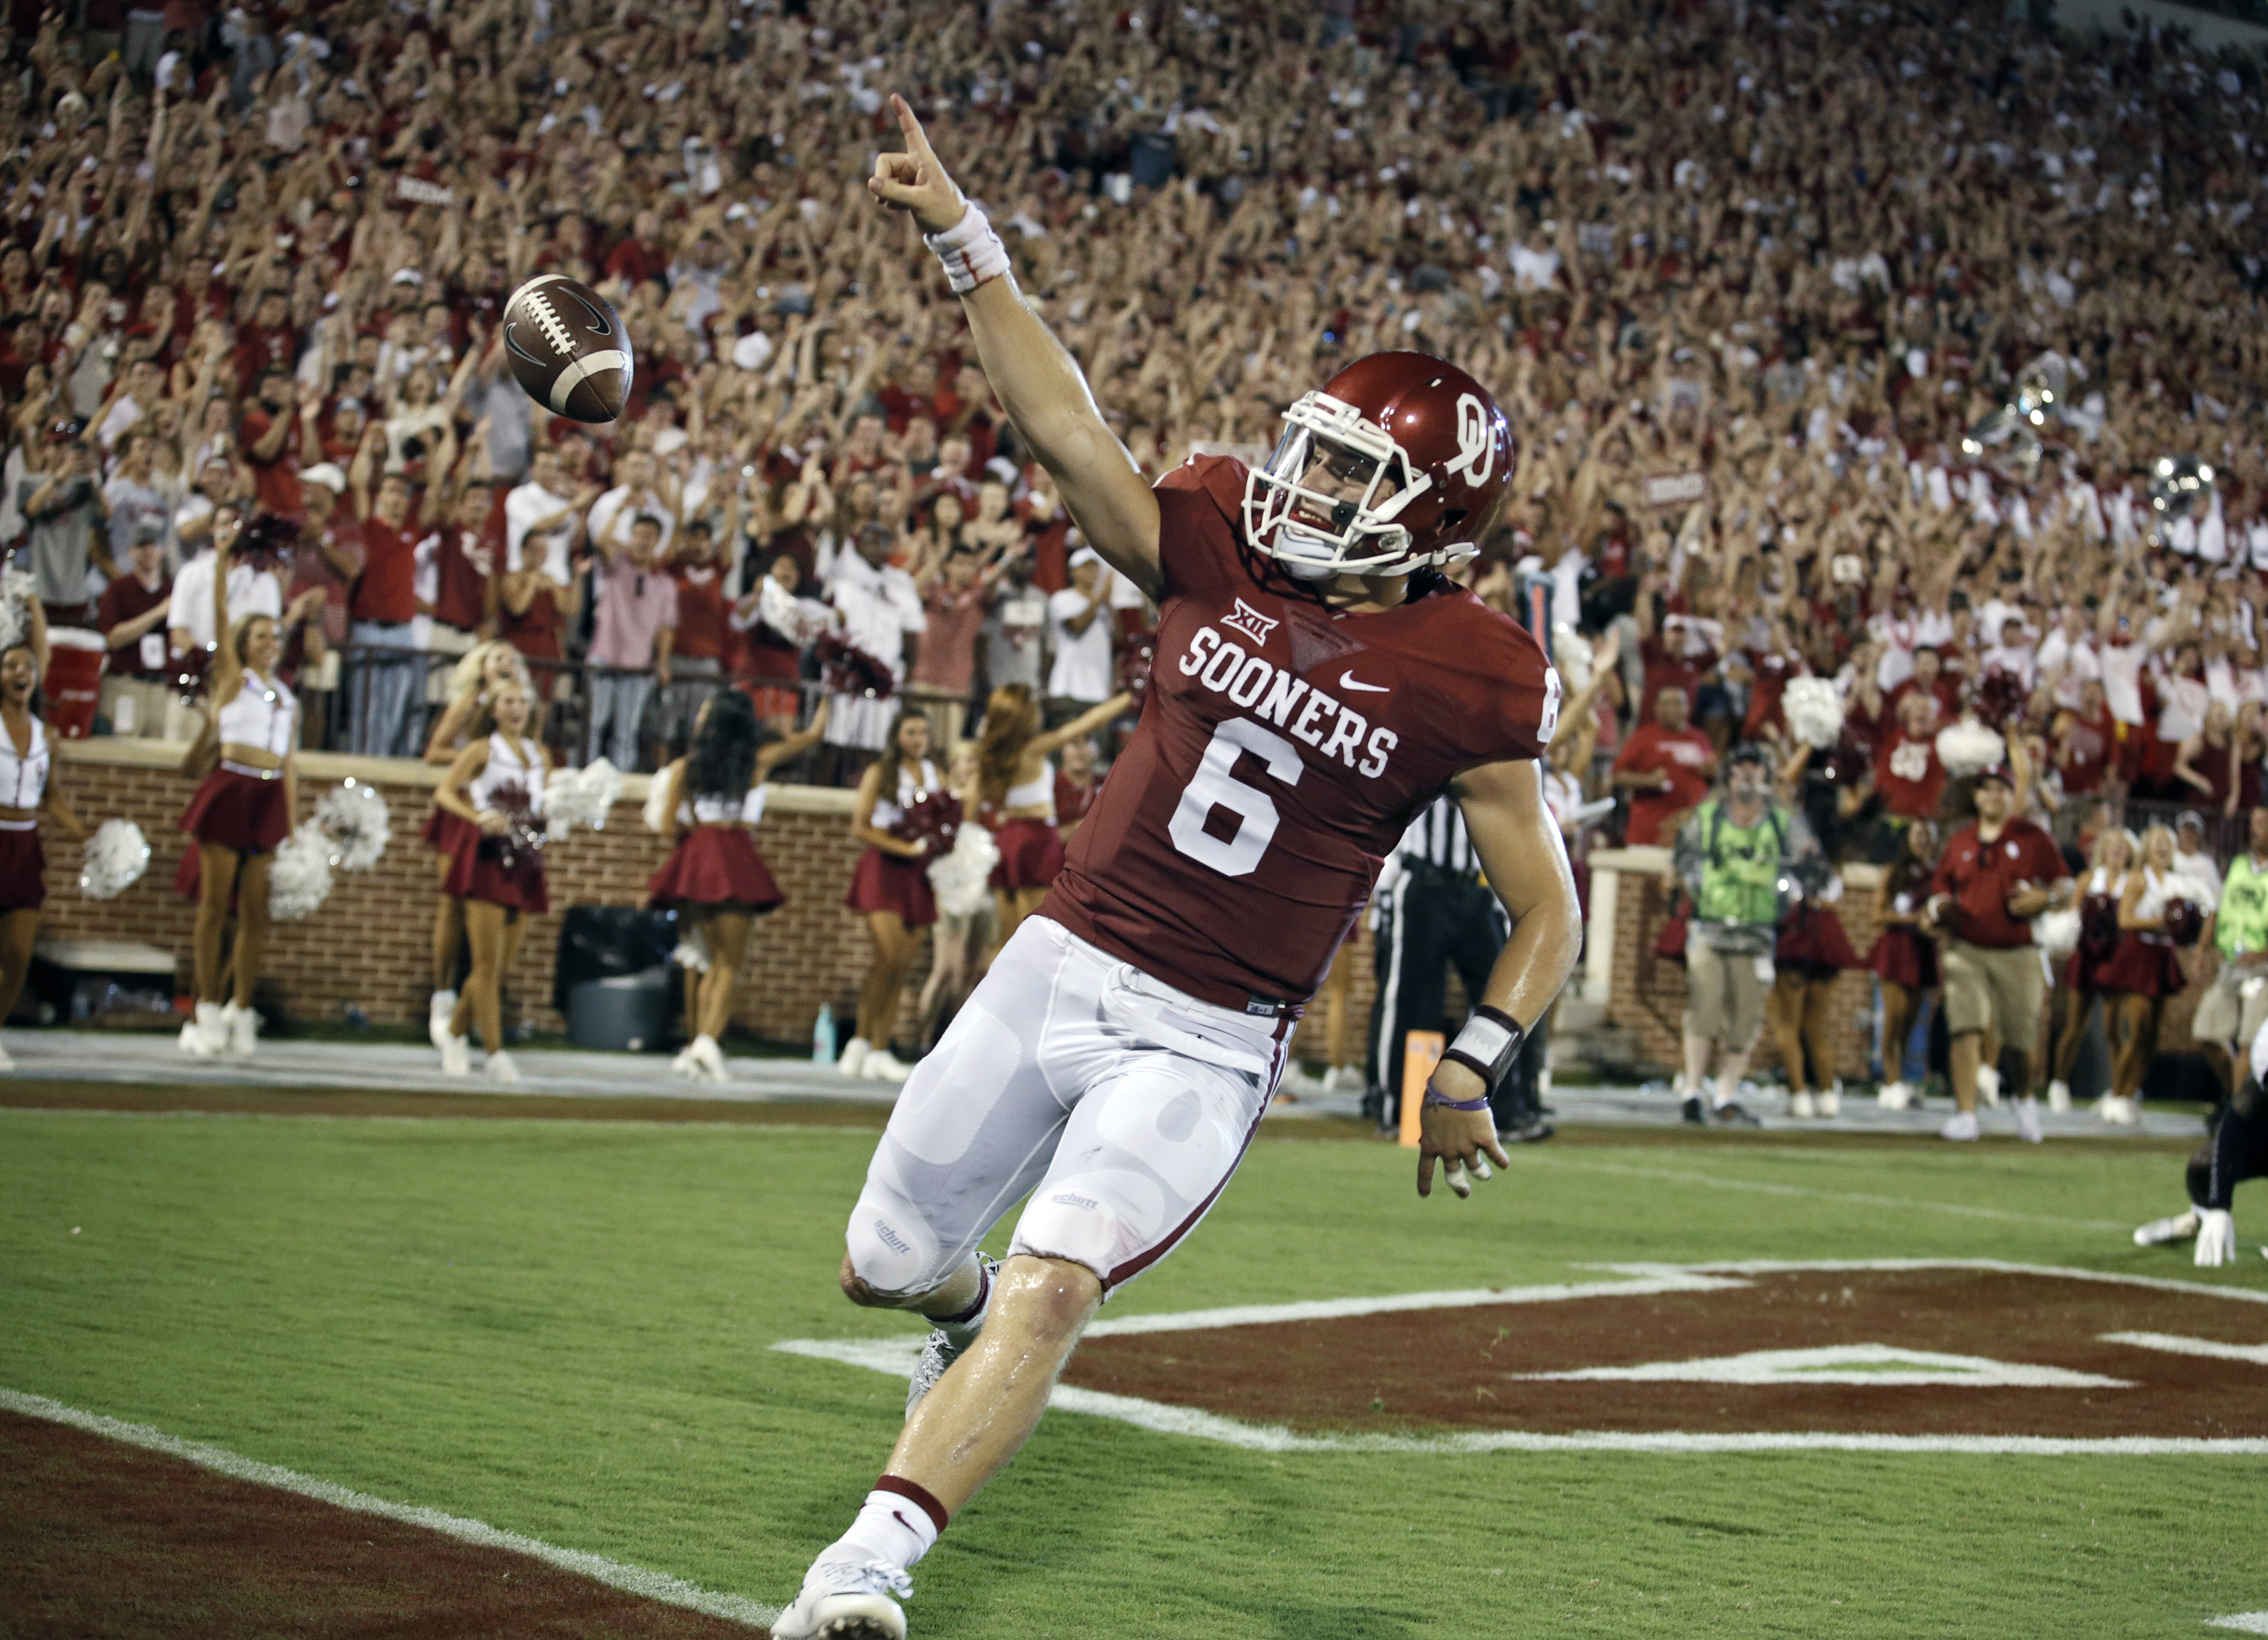 Oklahoma QB Baker Mayfield Returning For Senior Season